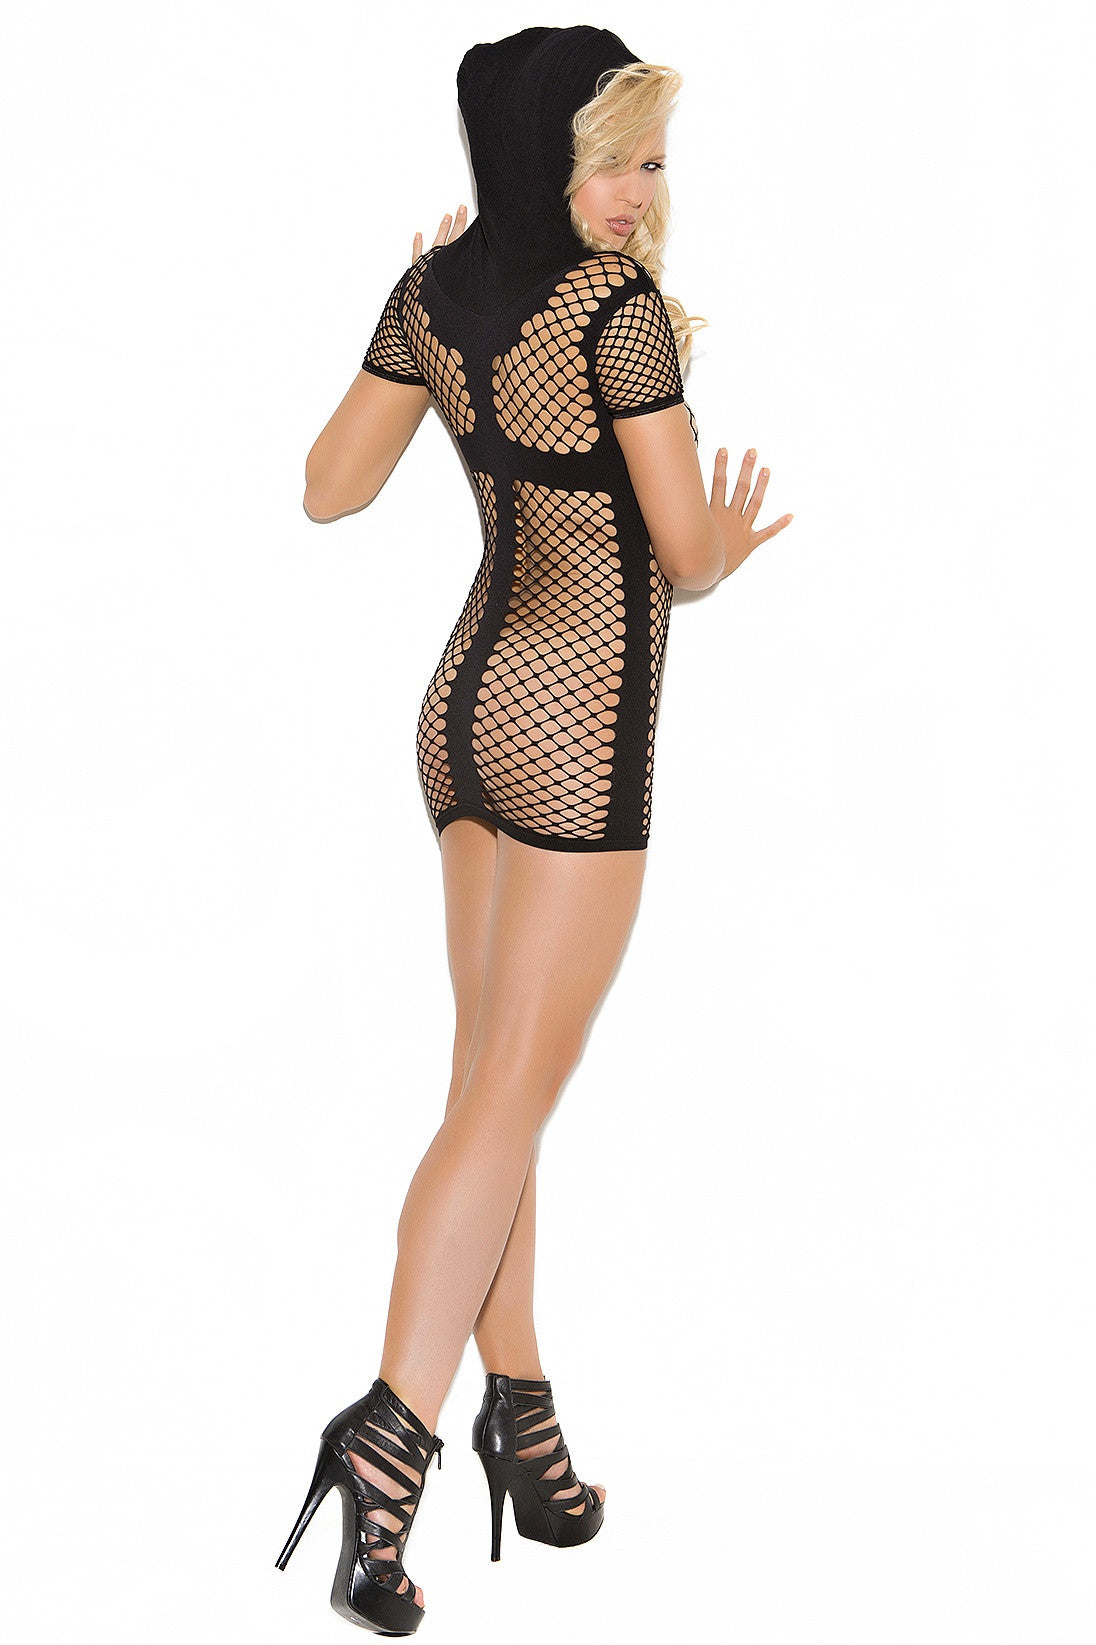 EM-8956 Black hooded fishnet mini dress - Sexylingerieland  - 2